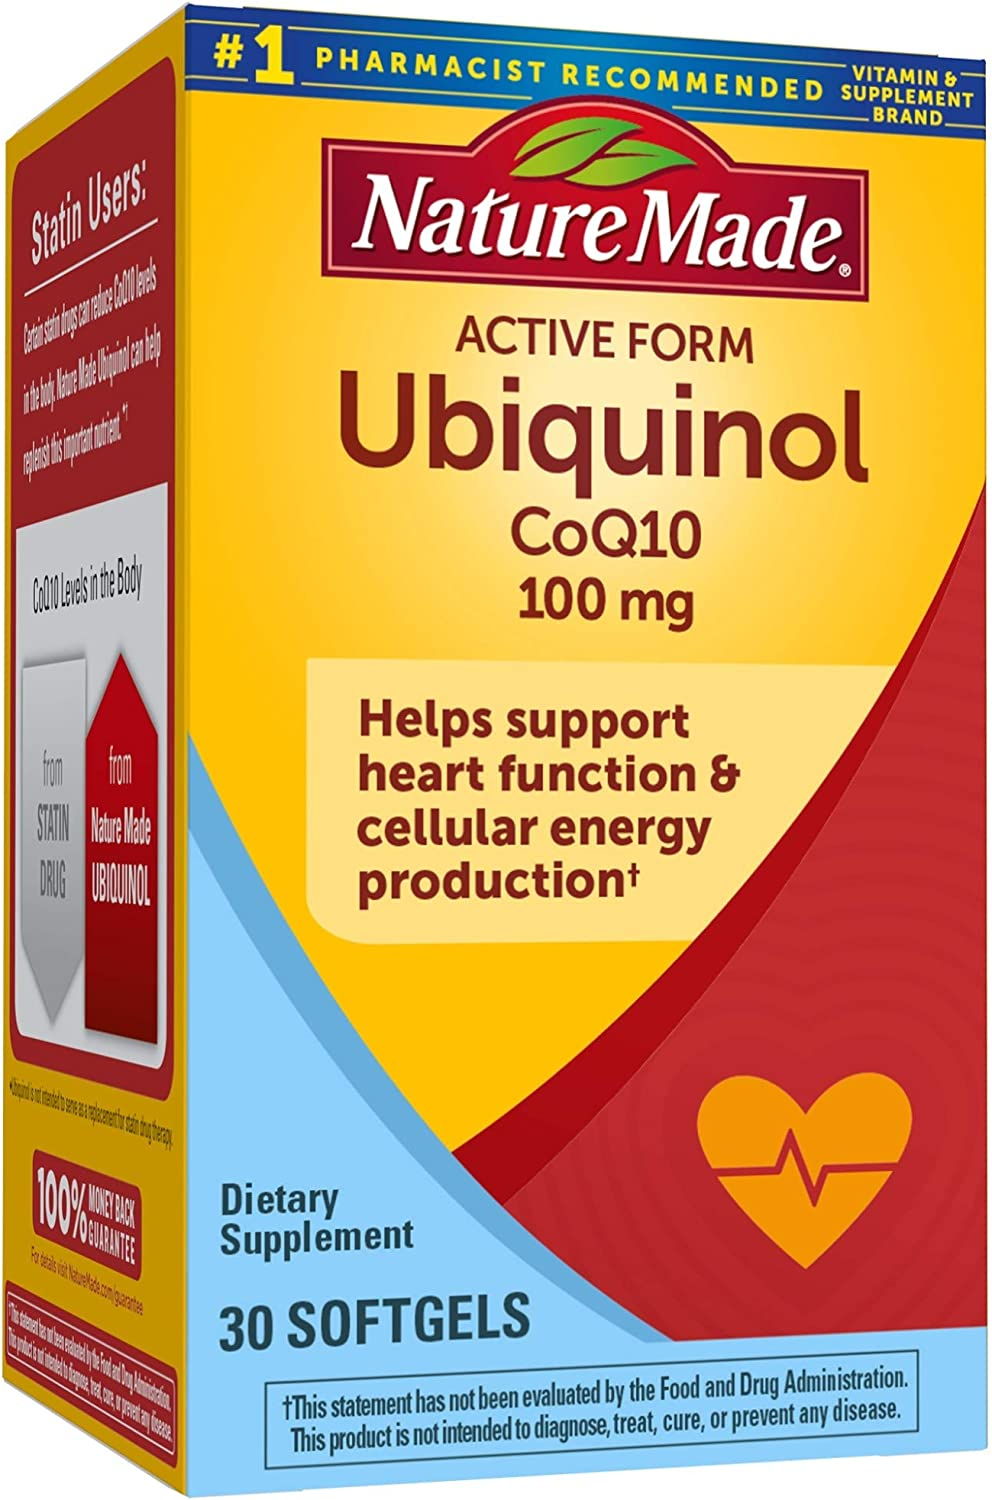 Nature Made Ubiquinol CoQ10 100 mg Softgels, 30 Count for Heart Health† (Packaging May Vary)